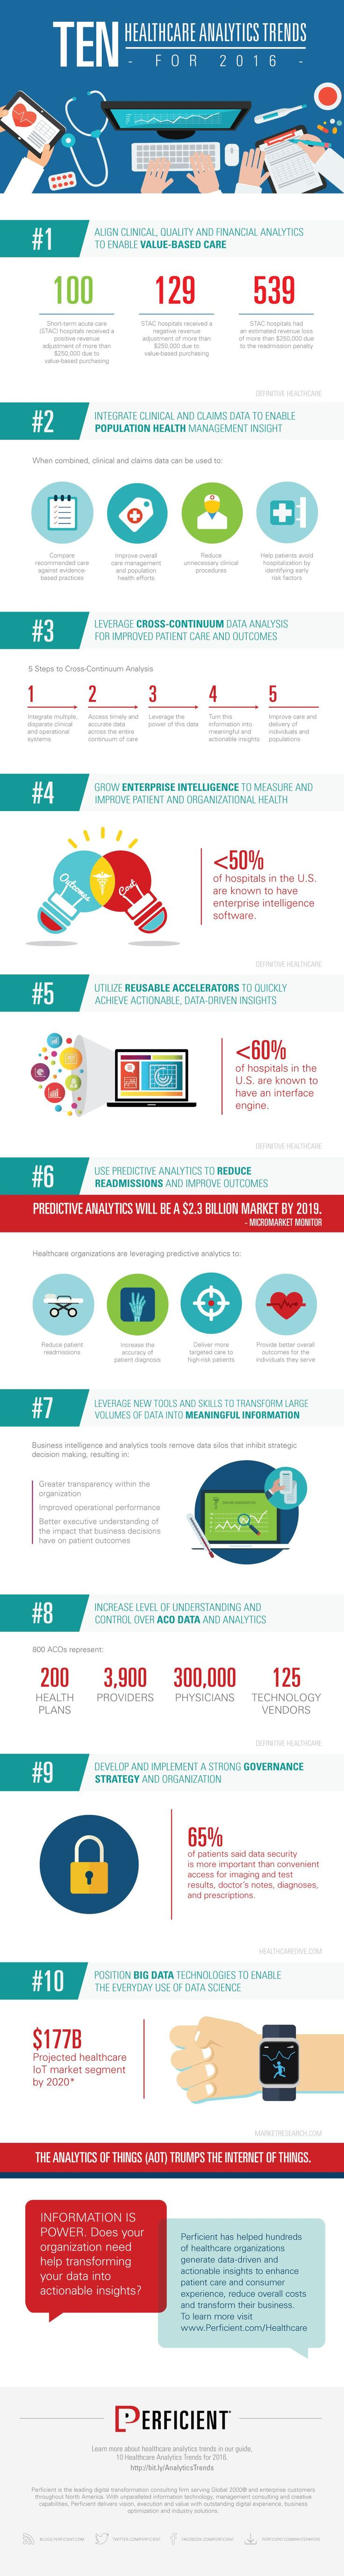 Healthcare Analytics Trends to Watch